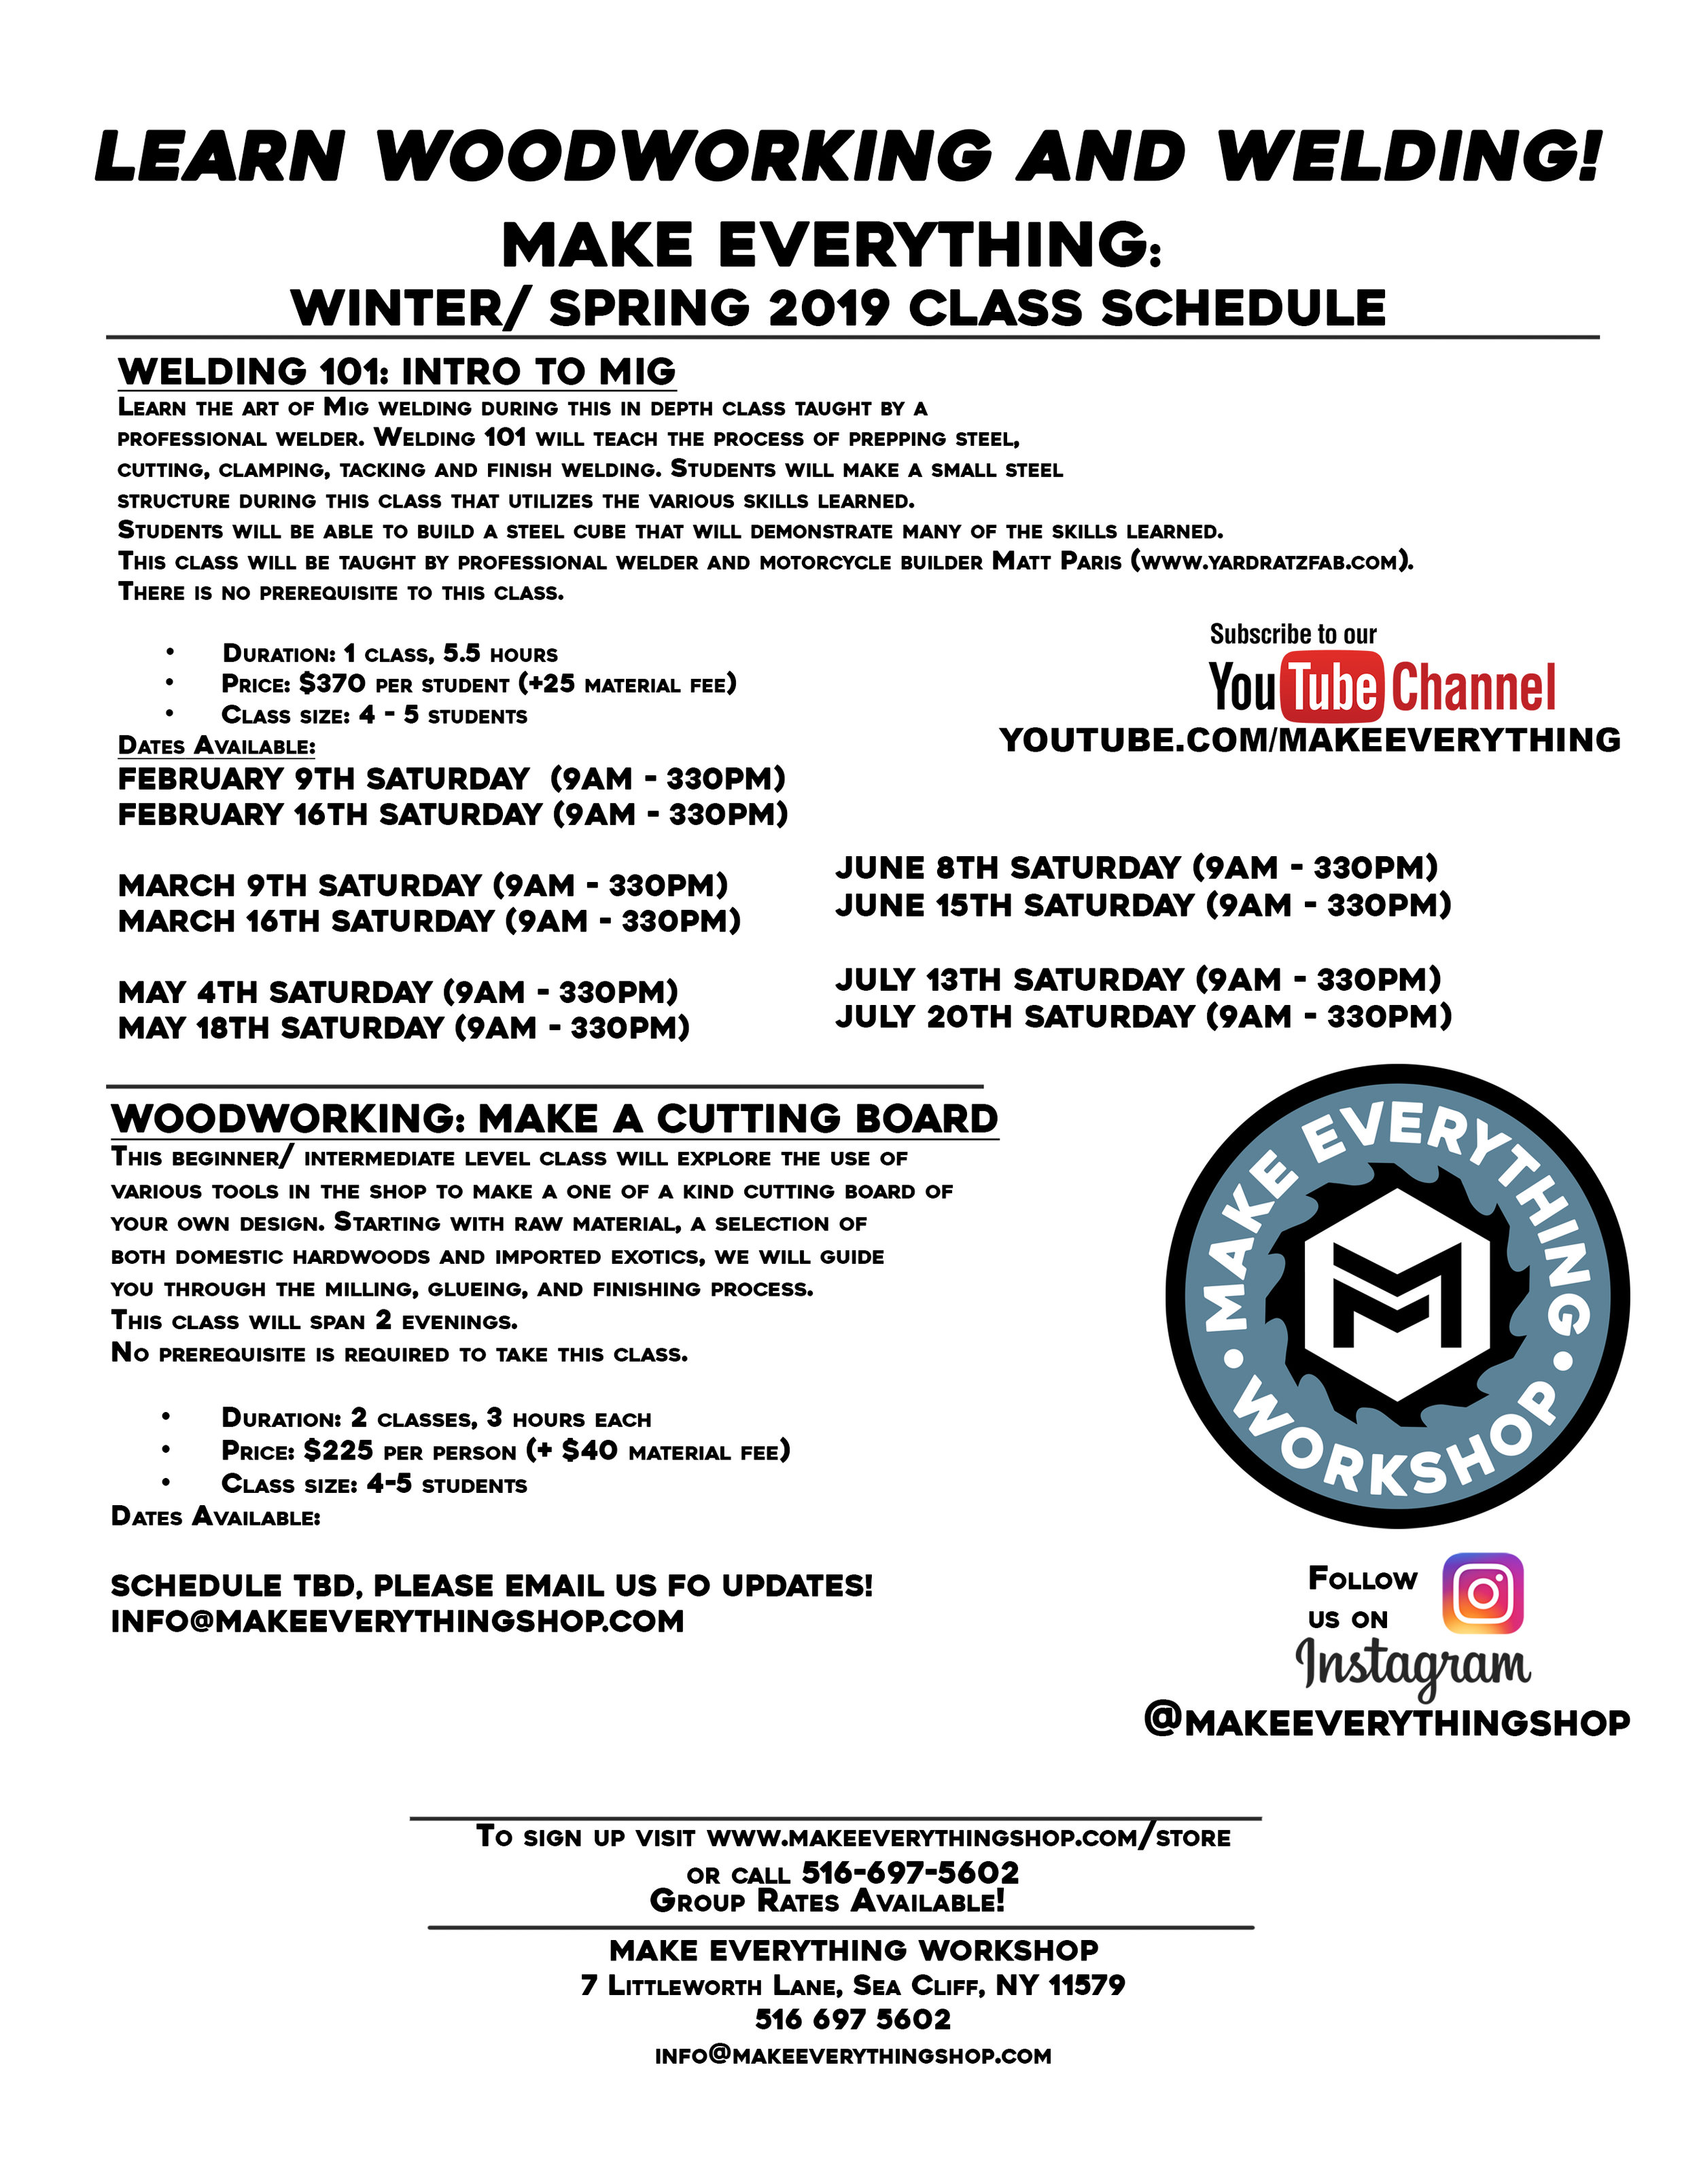 ME Fall Class Flyer 6 Winter 2019.jpg